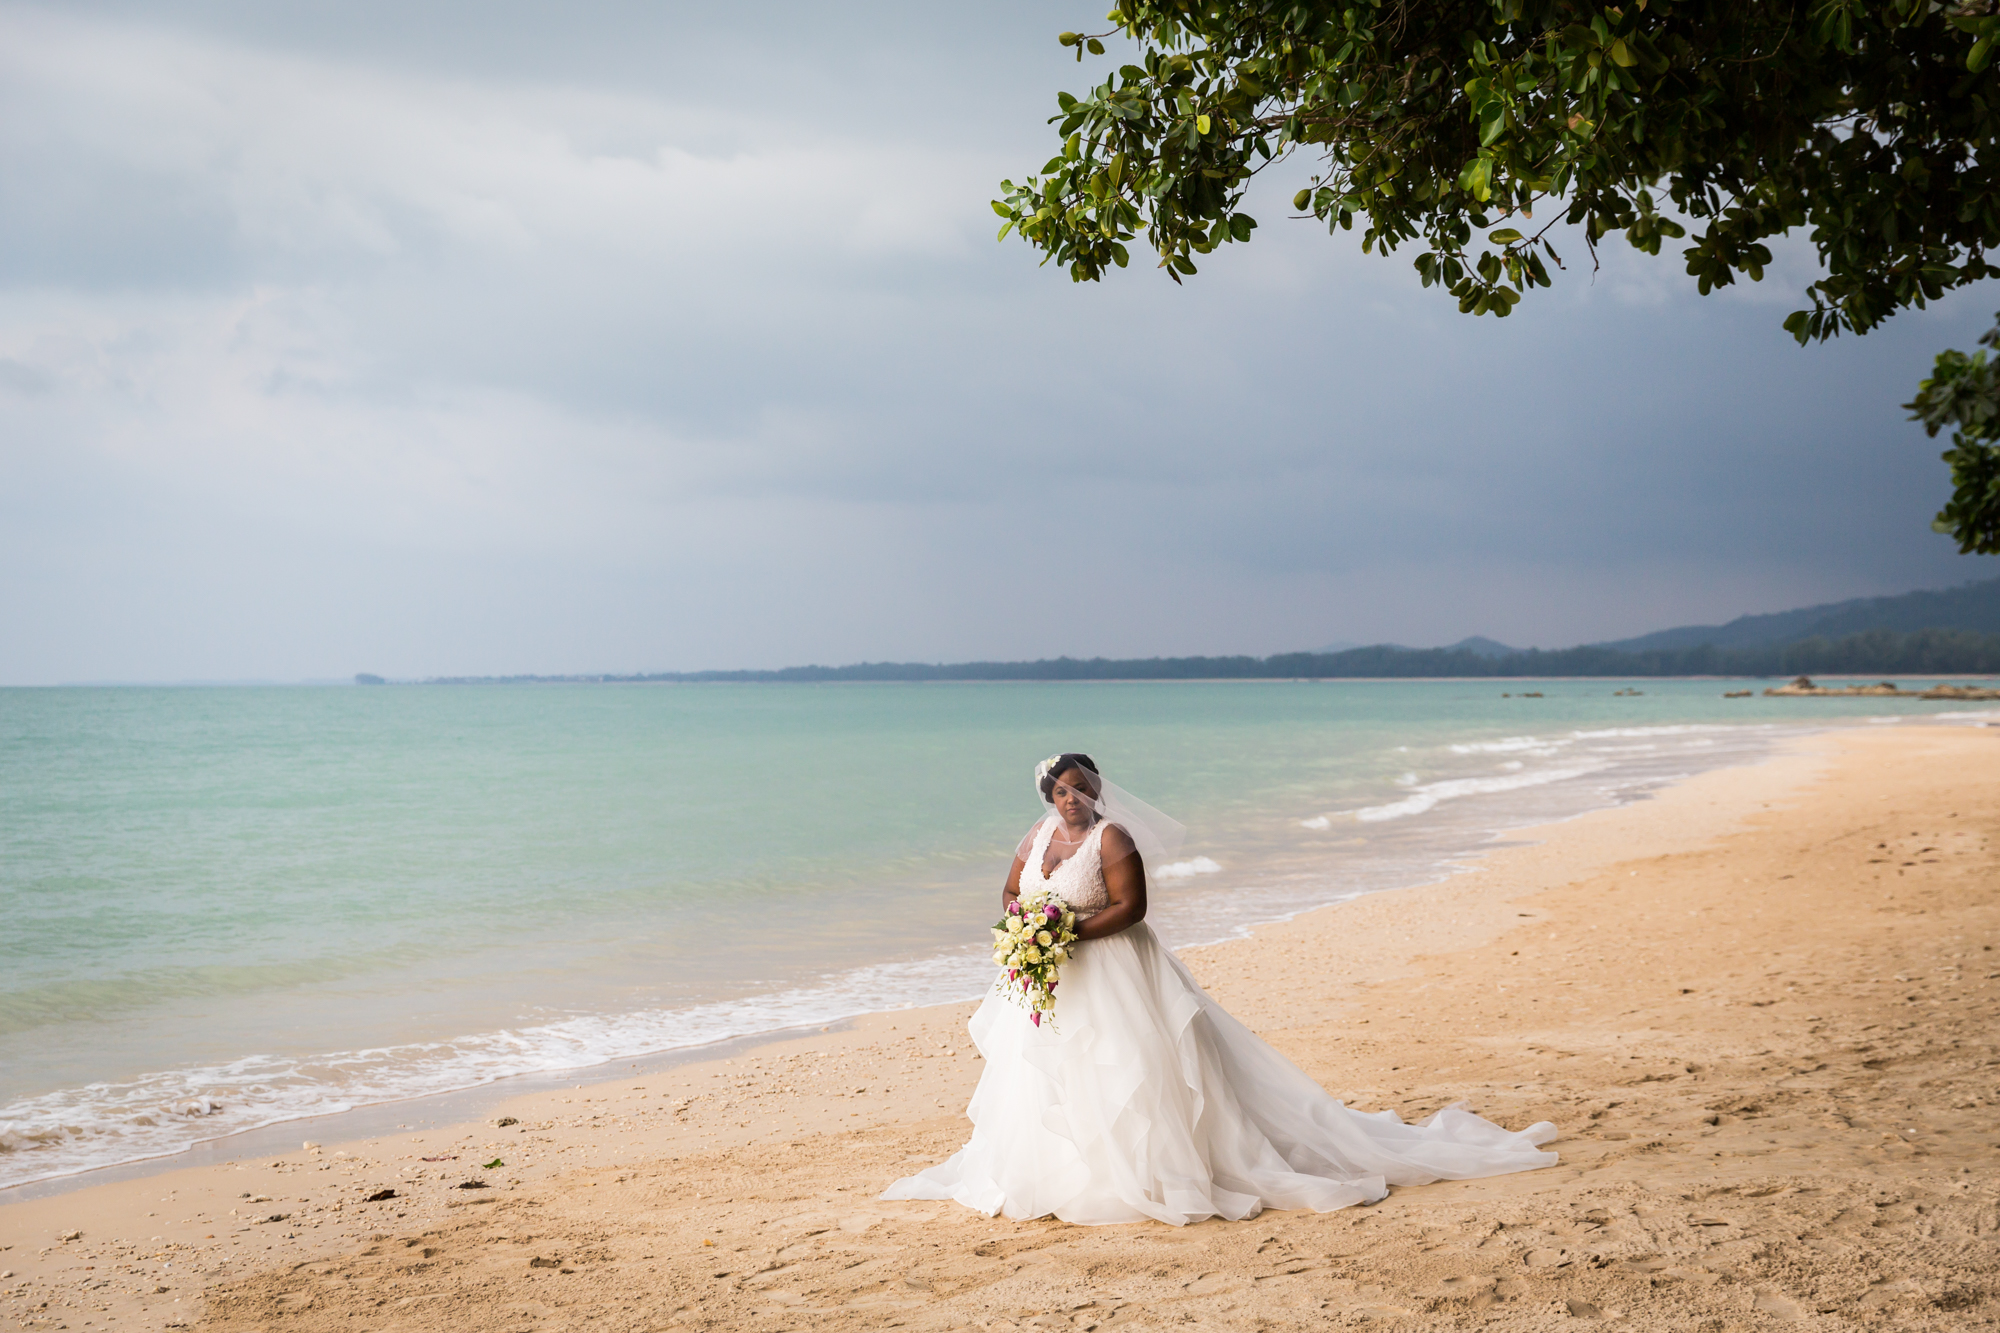 Bride on beach for an article on destination wedding planning tips